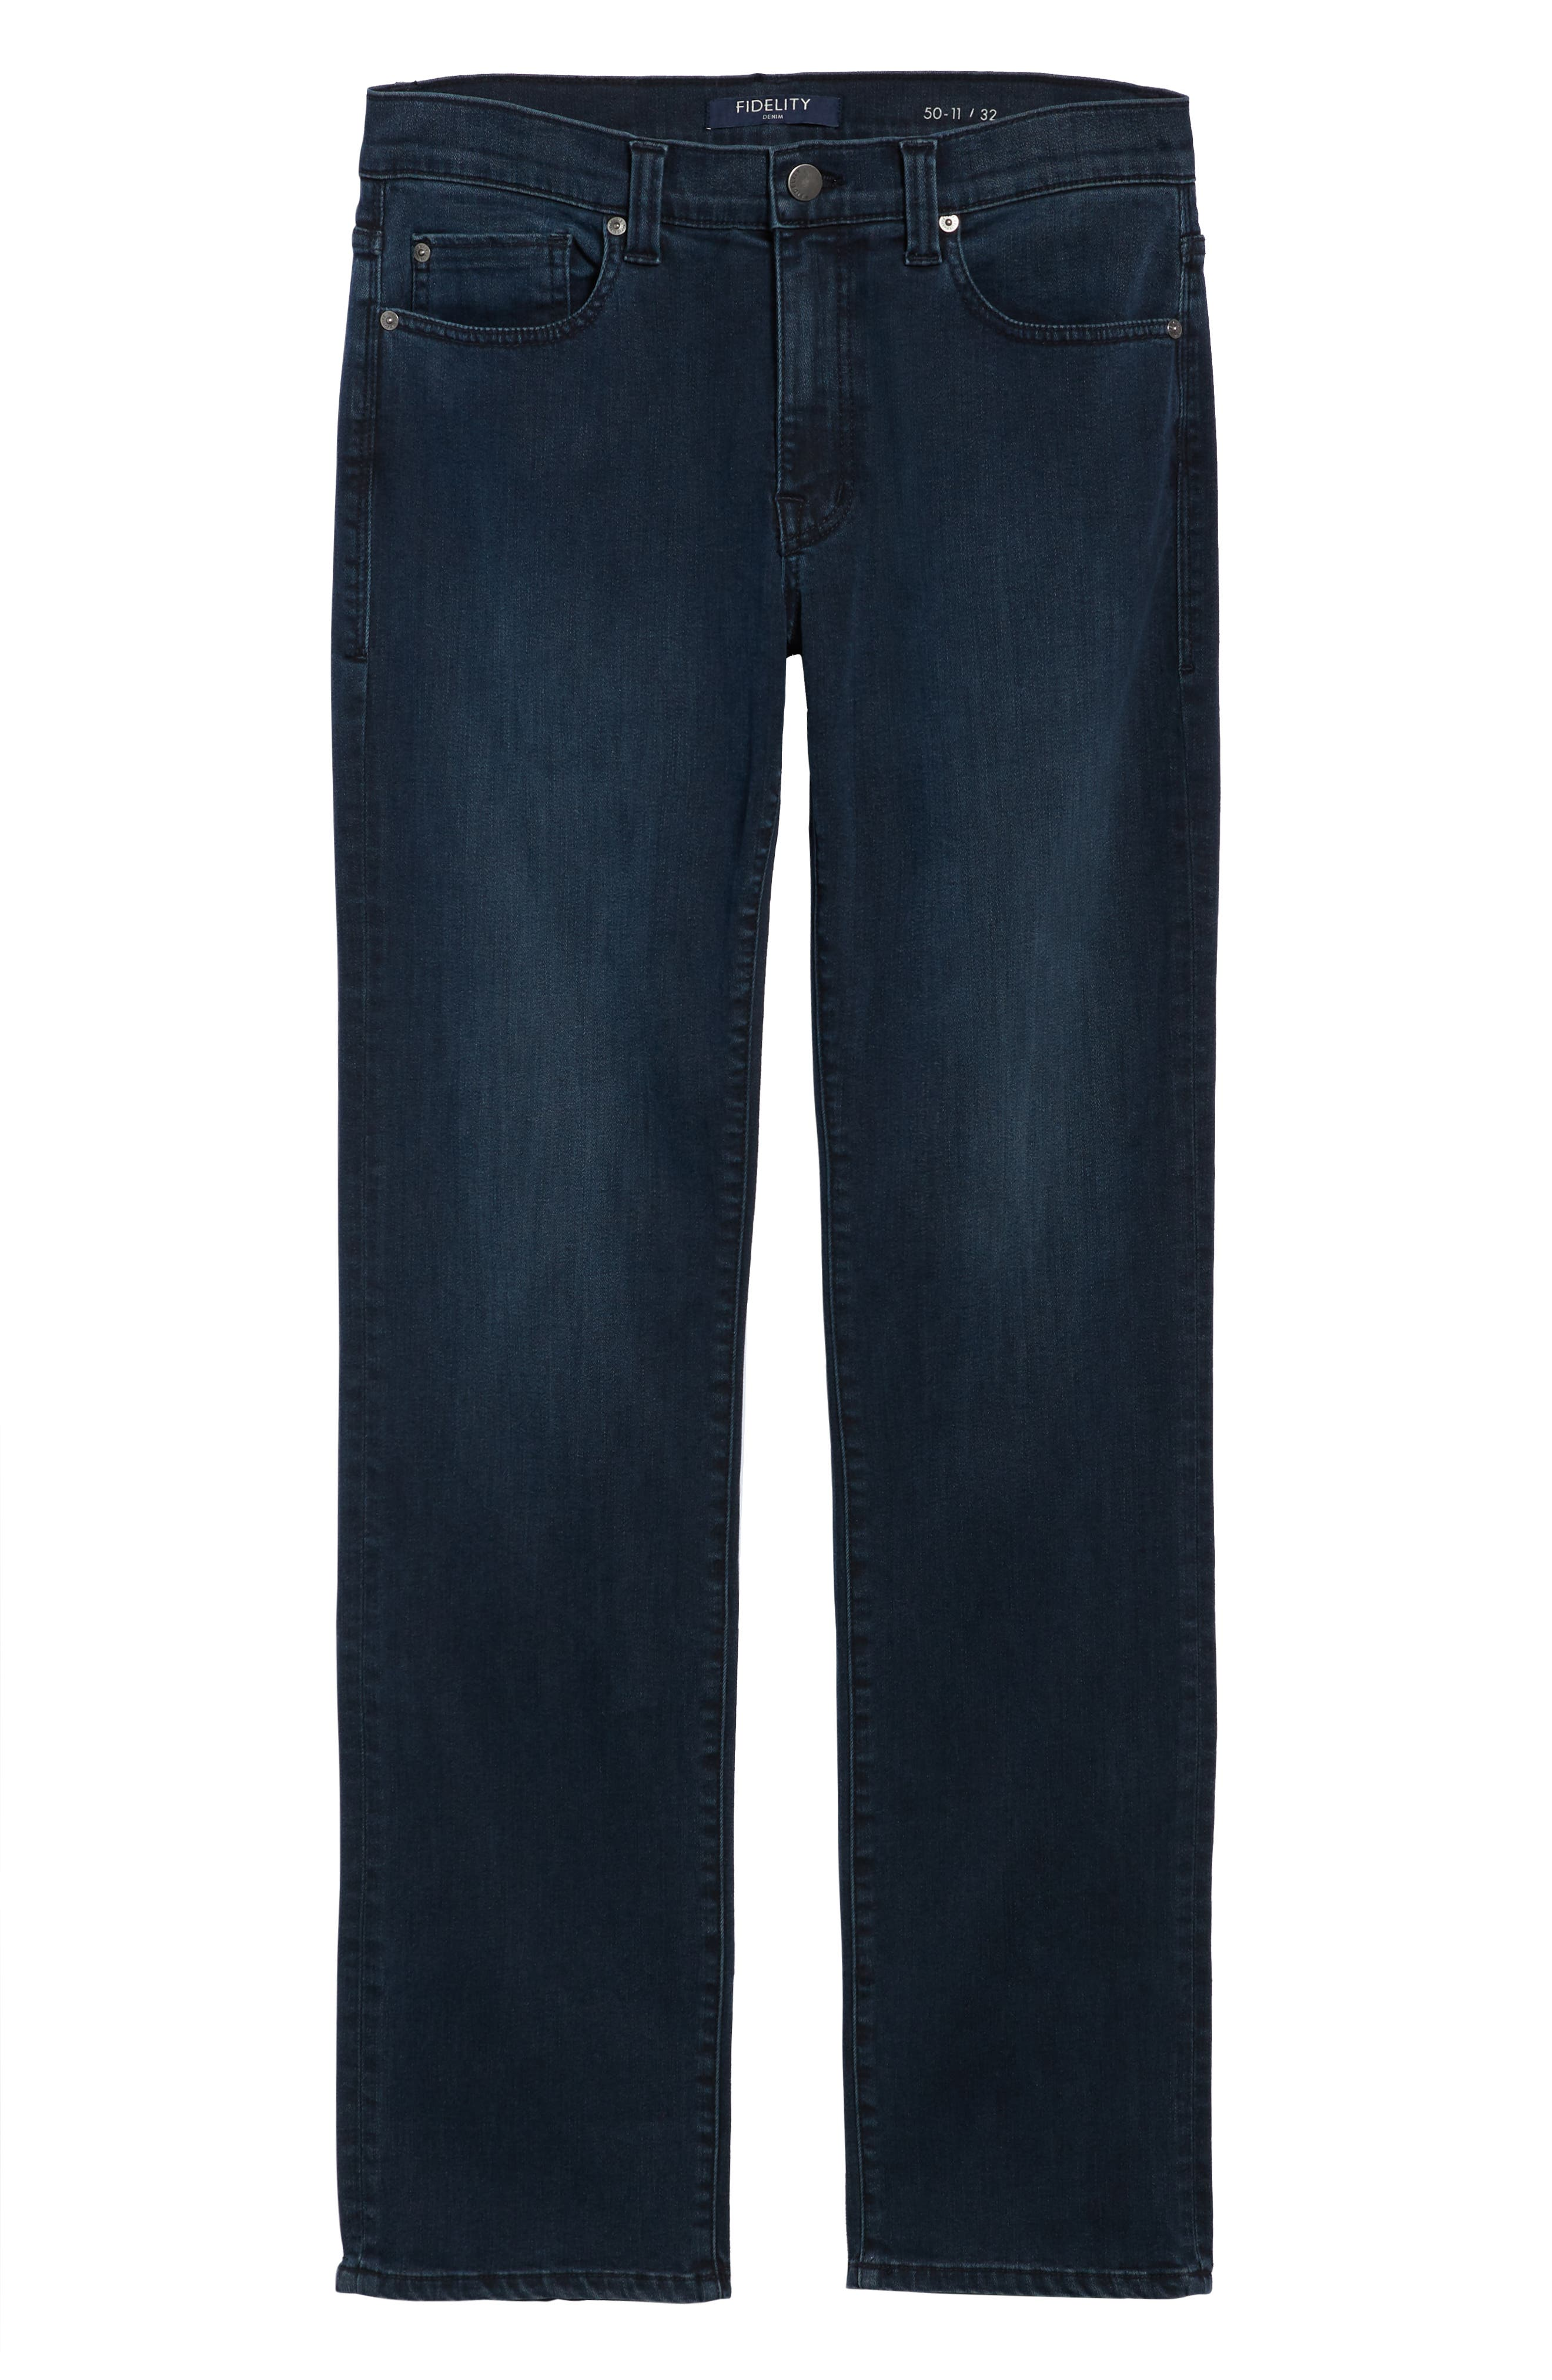 50-11 Relaxed Fit Jeans,                             Alternate thumbnail 6, color,                             MILLI BLUE